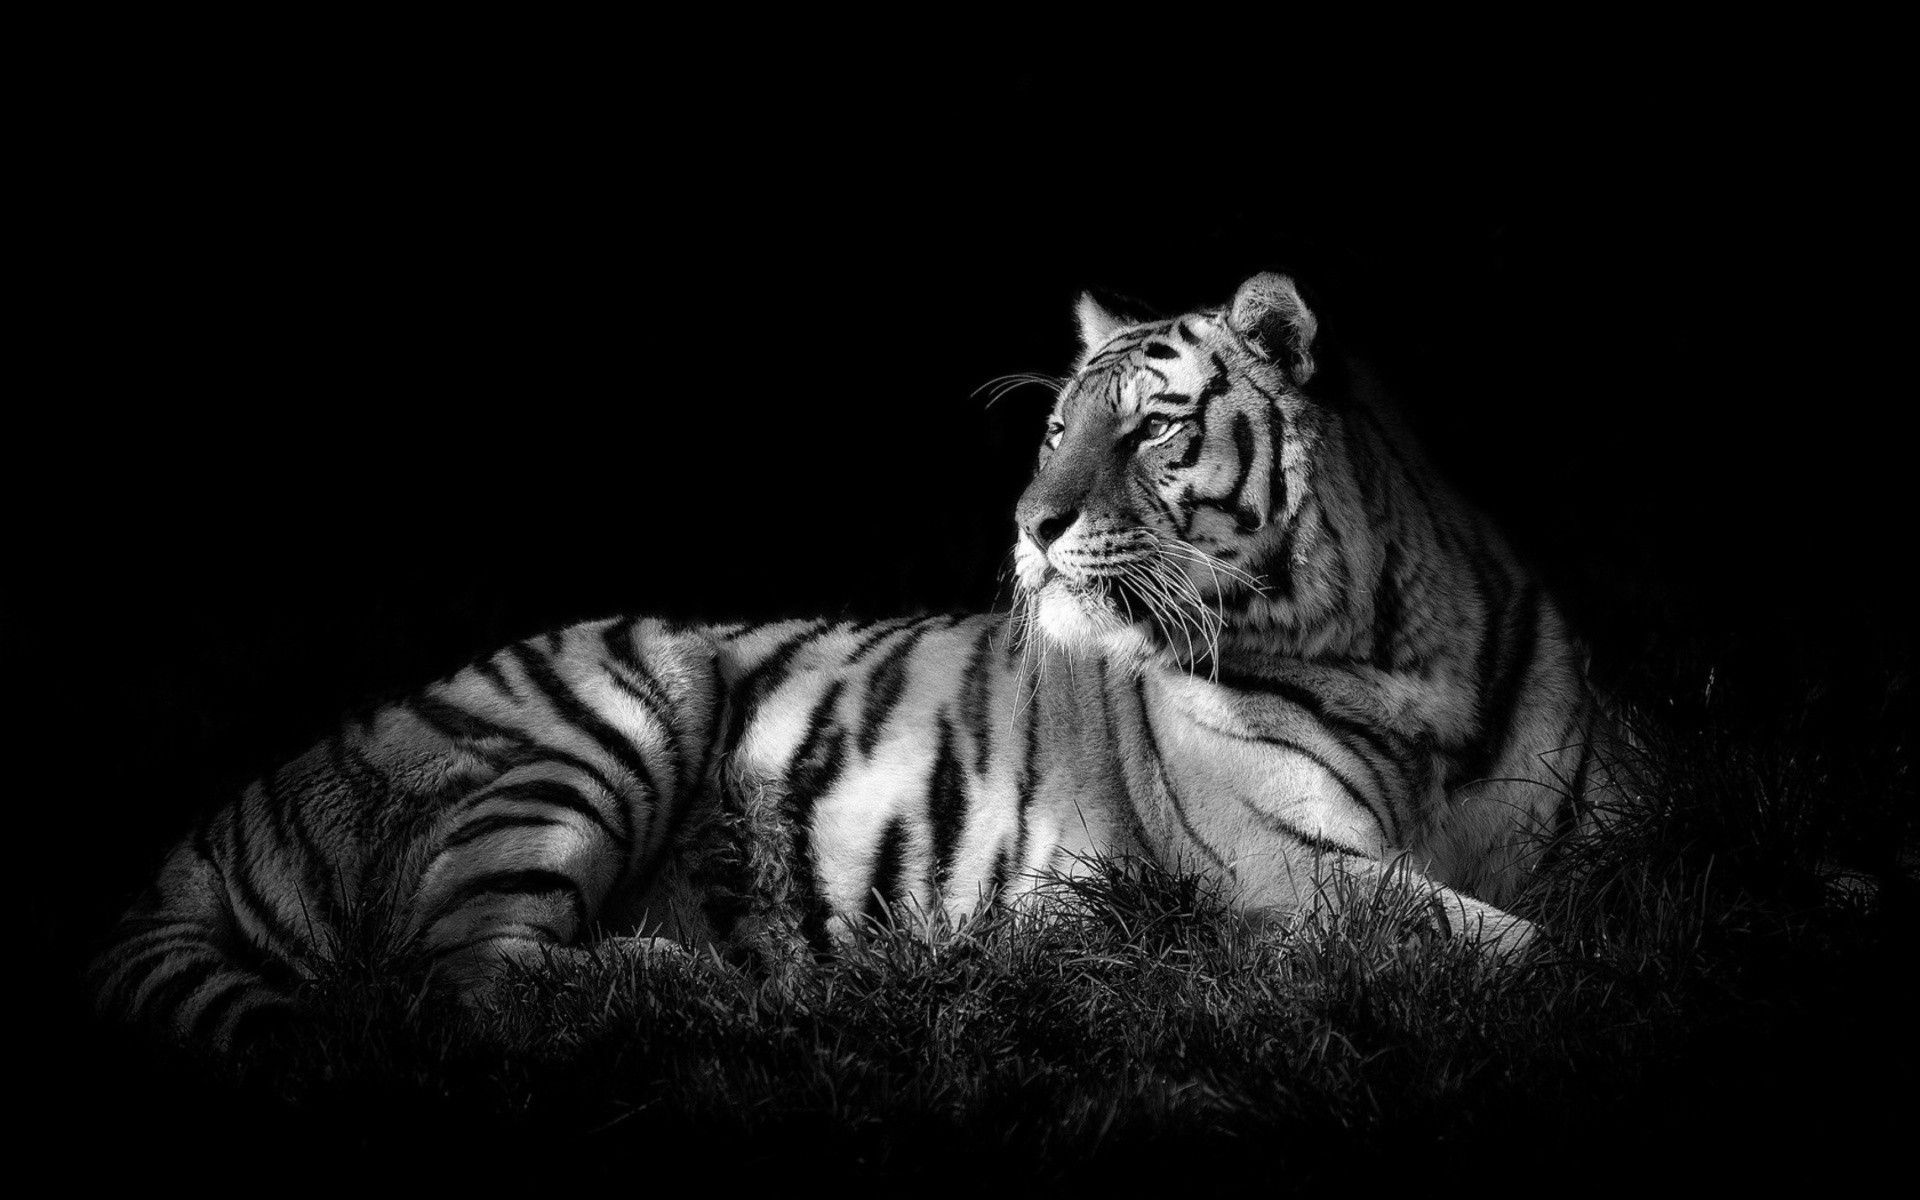 White Tiger looks into the distance, Wallpaper Theme